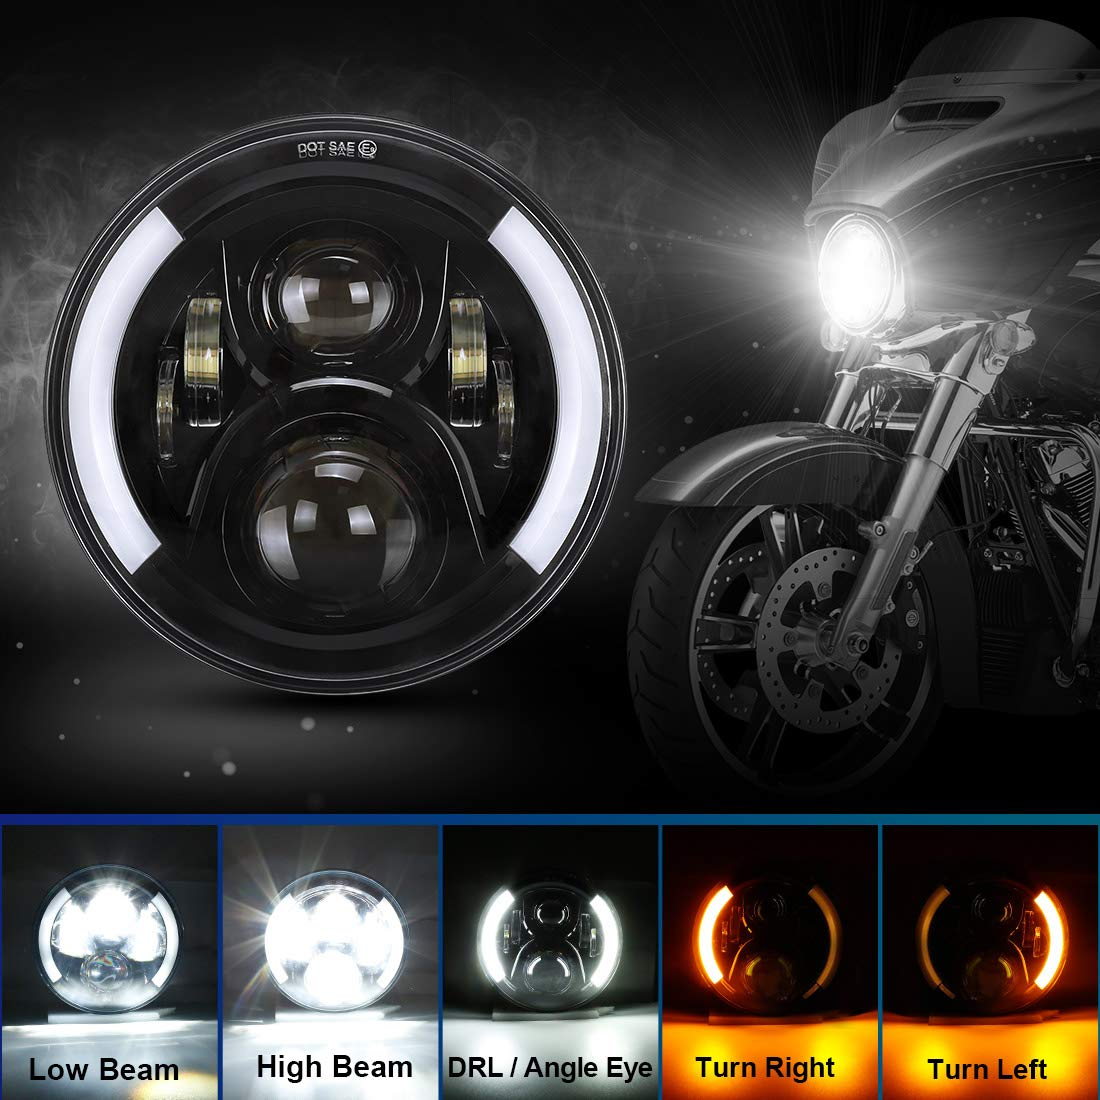 SUPAREE 7 inches LED Motorcycle Headlight for Harley Davidson Touring Road King Ultra Classic Electra Street Glide Tri Cvo Heritage Softail Slim Deluxe Fatboy Chrome